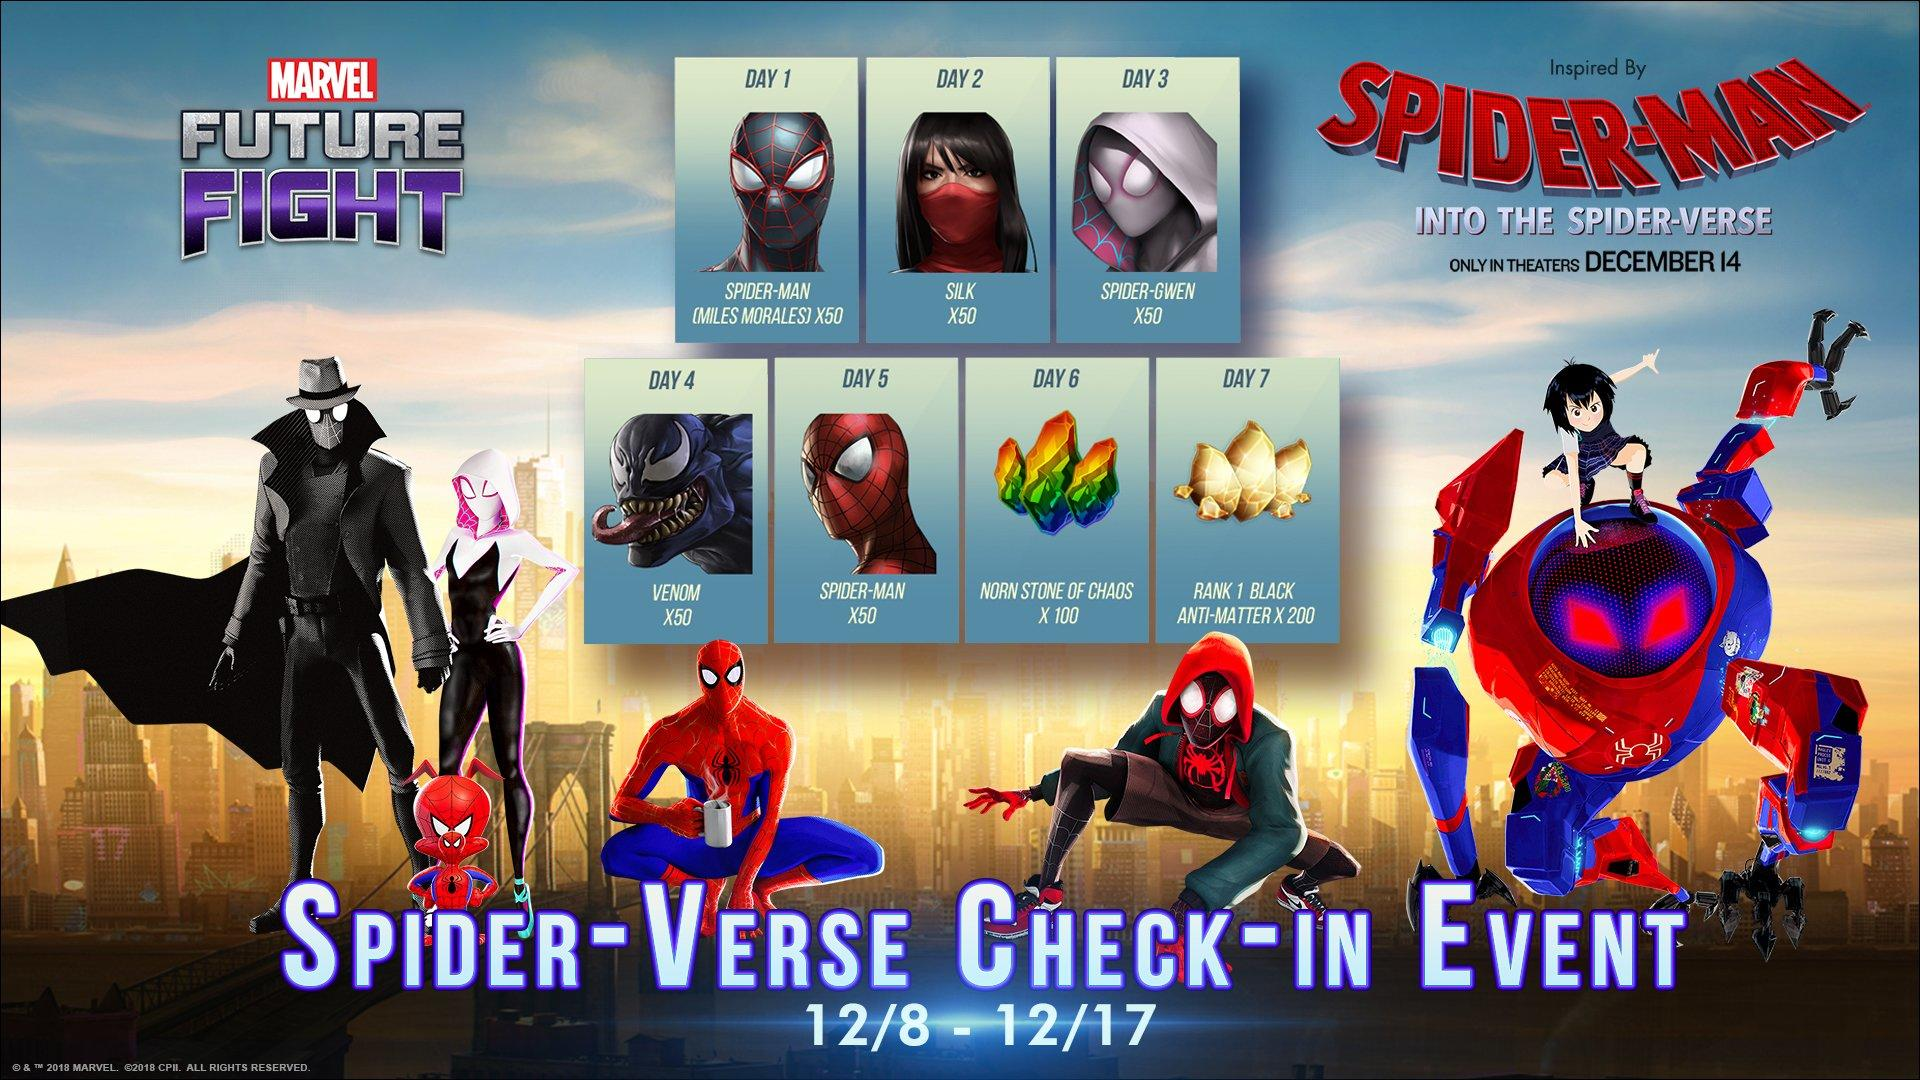 Marvel Future Fight - Spider-Man: Into the Spider-Verse